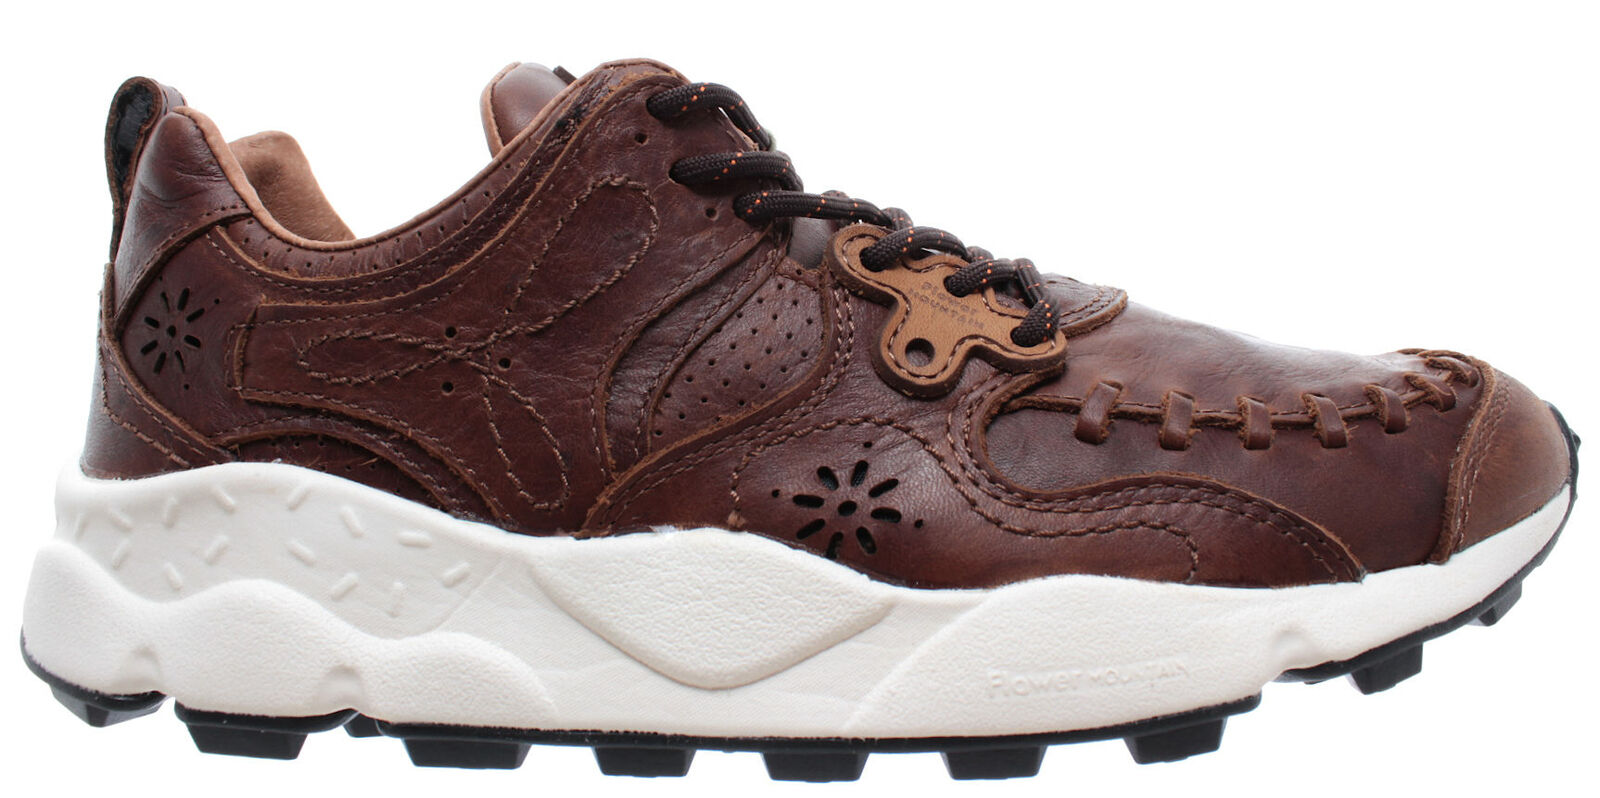 FLOWER MOUNTAIN chaussures Homme Turnchaussures Yahommeo Man Calf marron marroni Agion